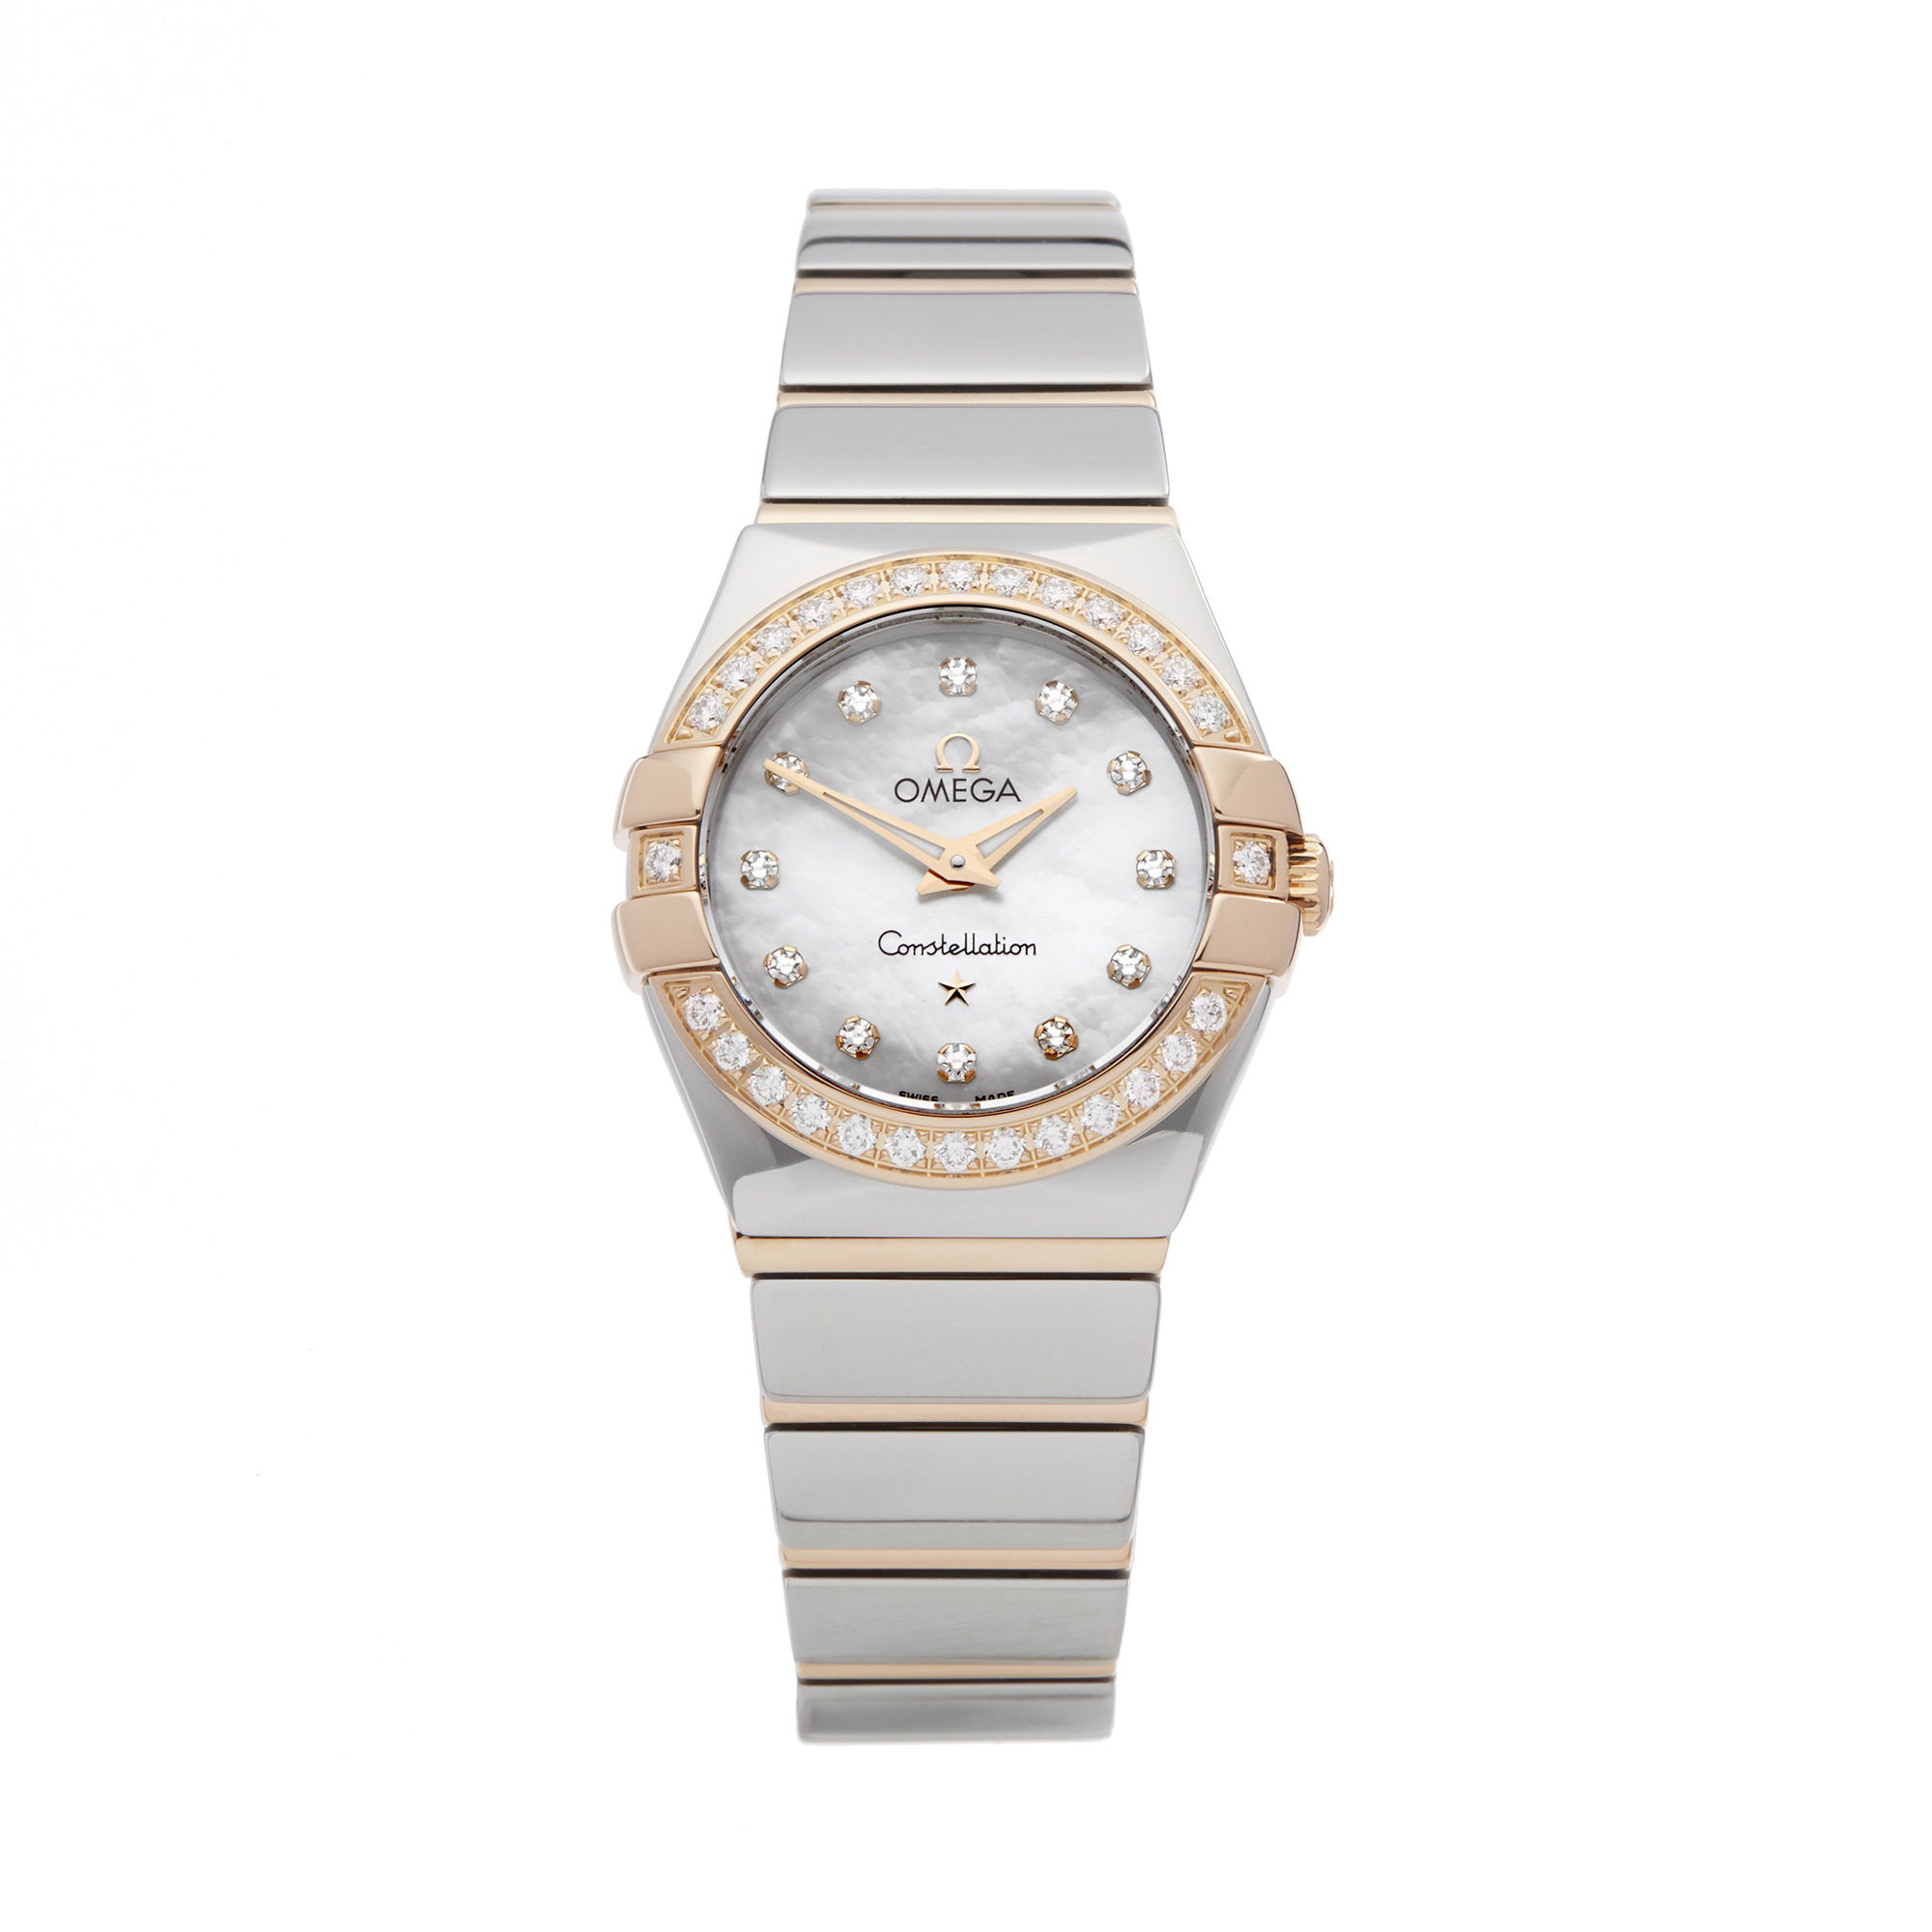 Omega Constellation 0 123.25.24.60.55.005 Ladies Stainless Steel & Rose Gold Diamond Mother Of Pearl - Image 7 of 7